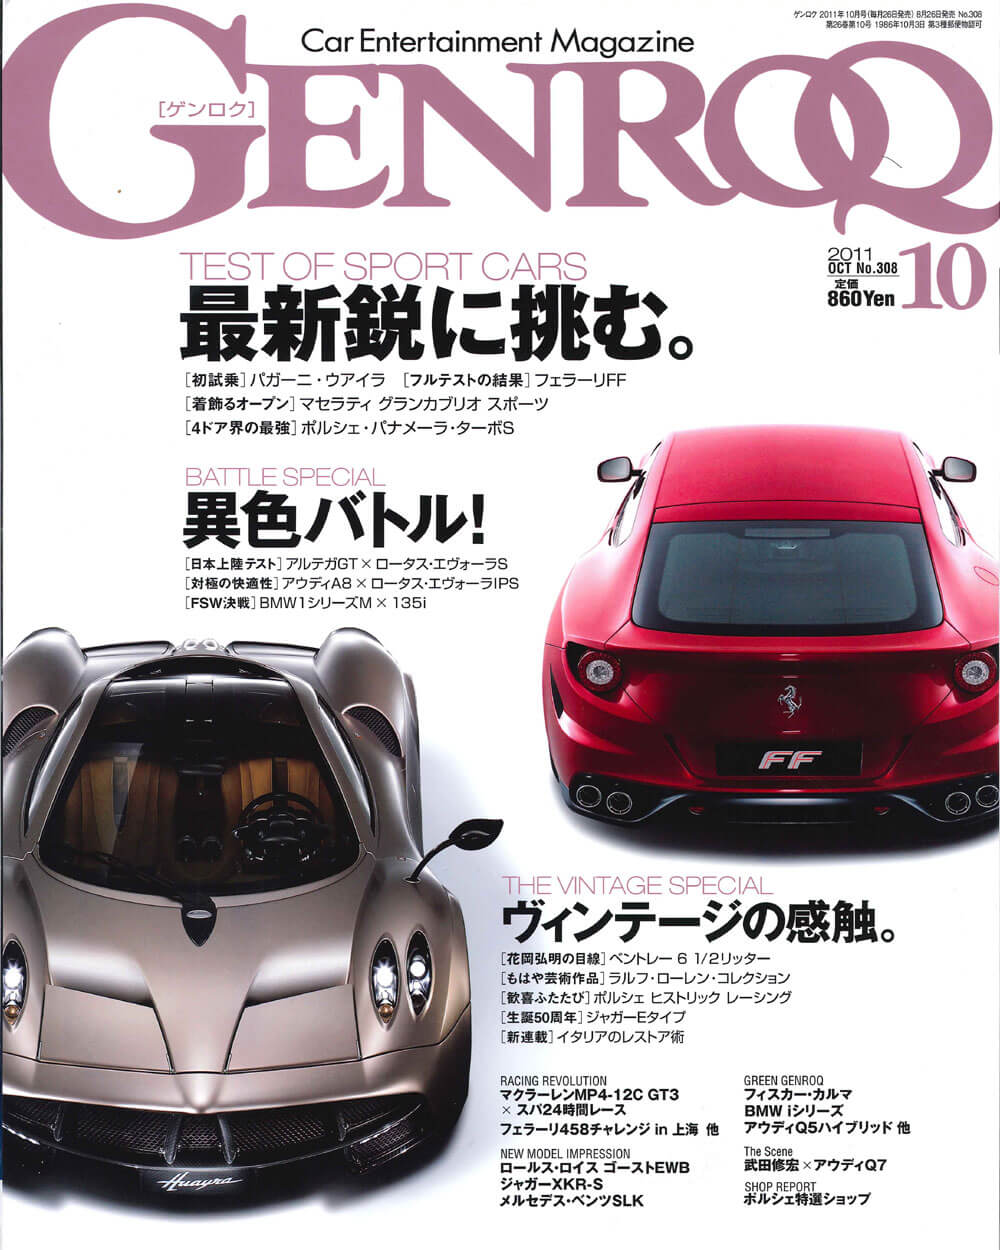 GENROQ Oct. issue